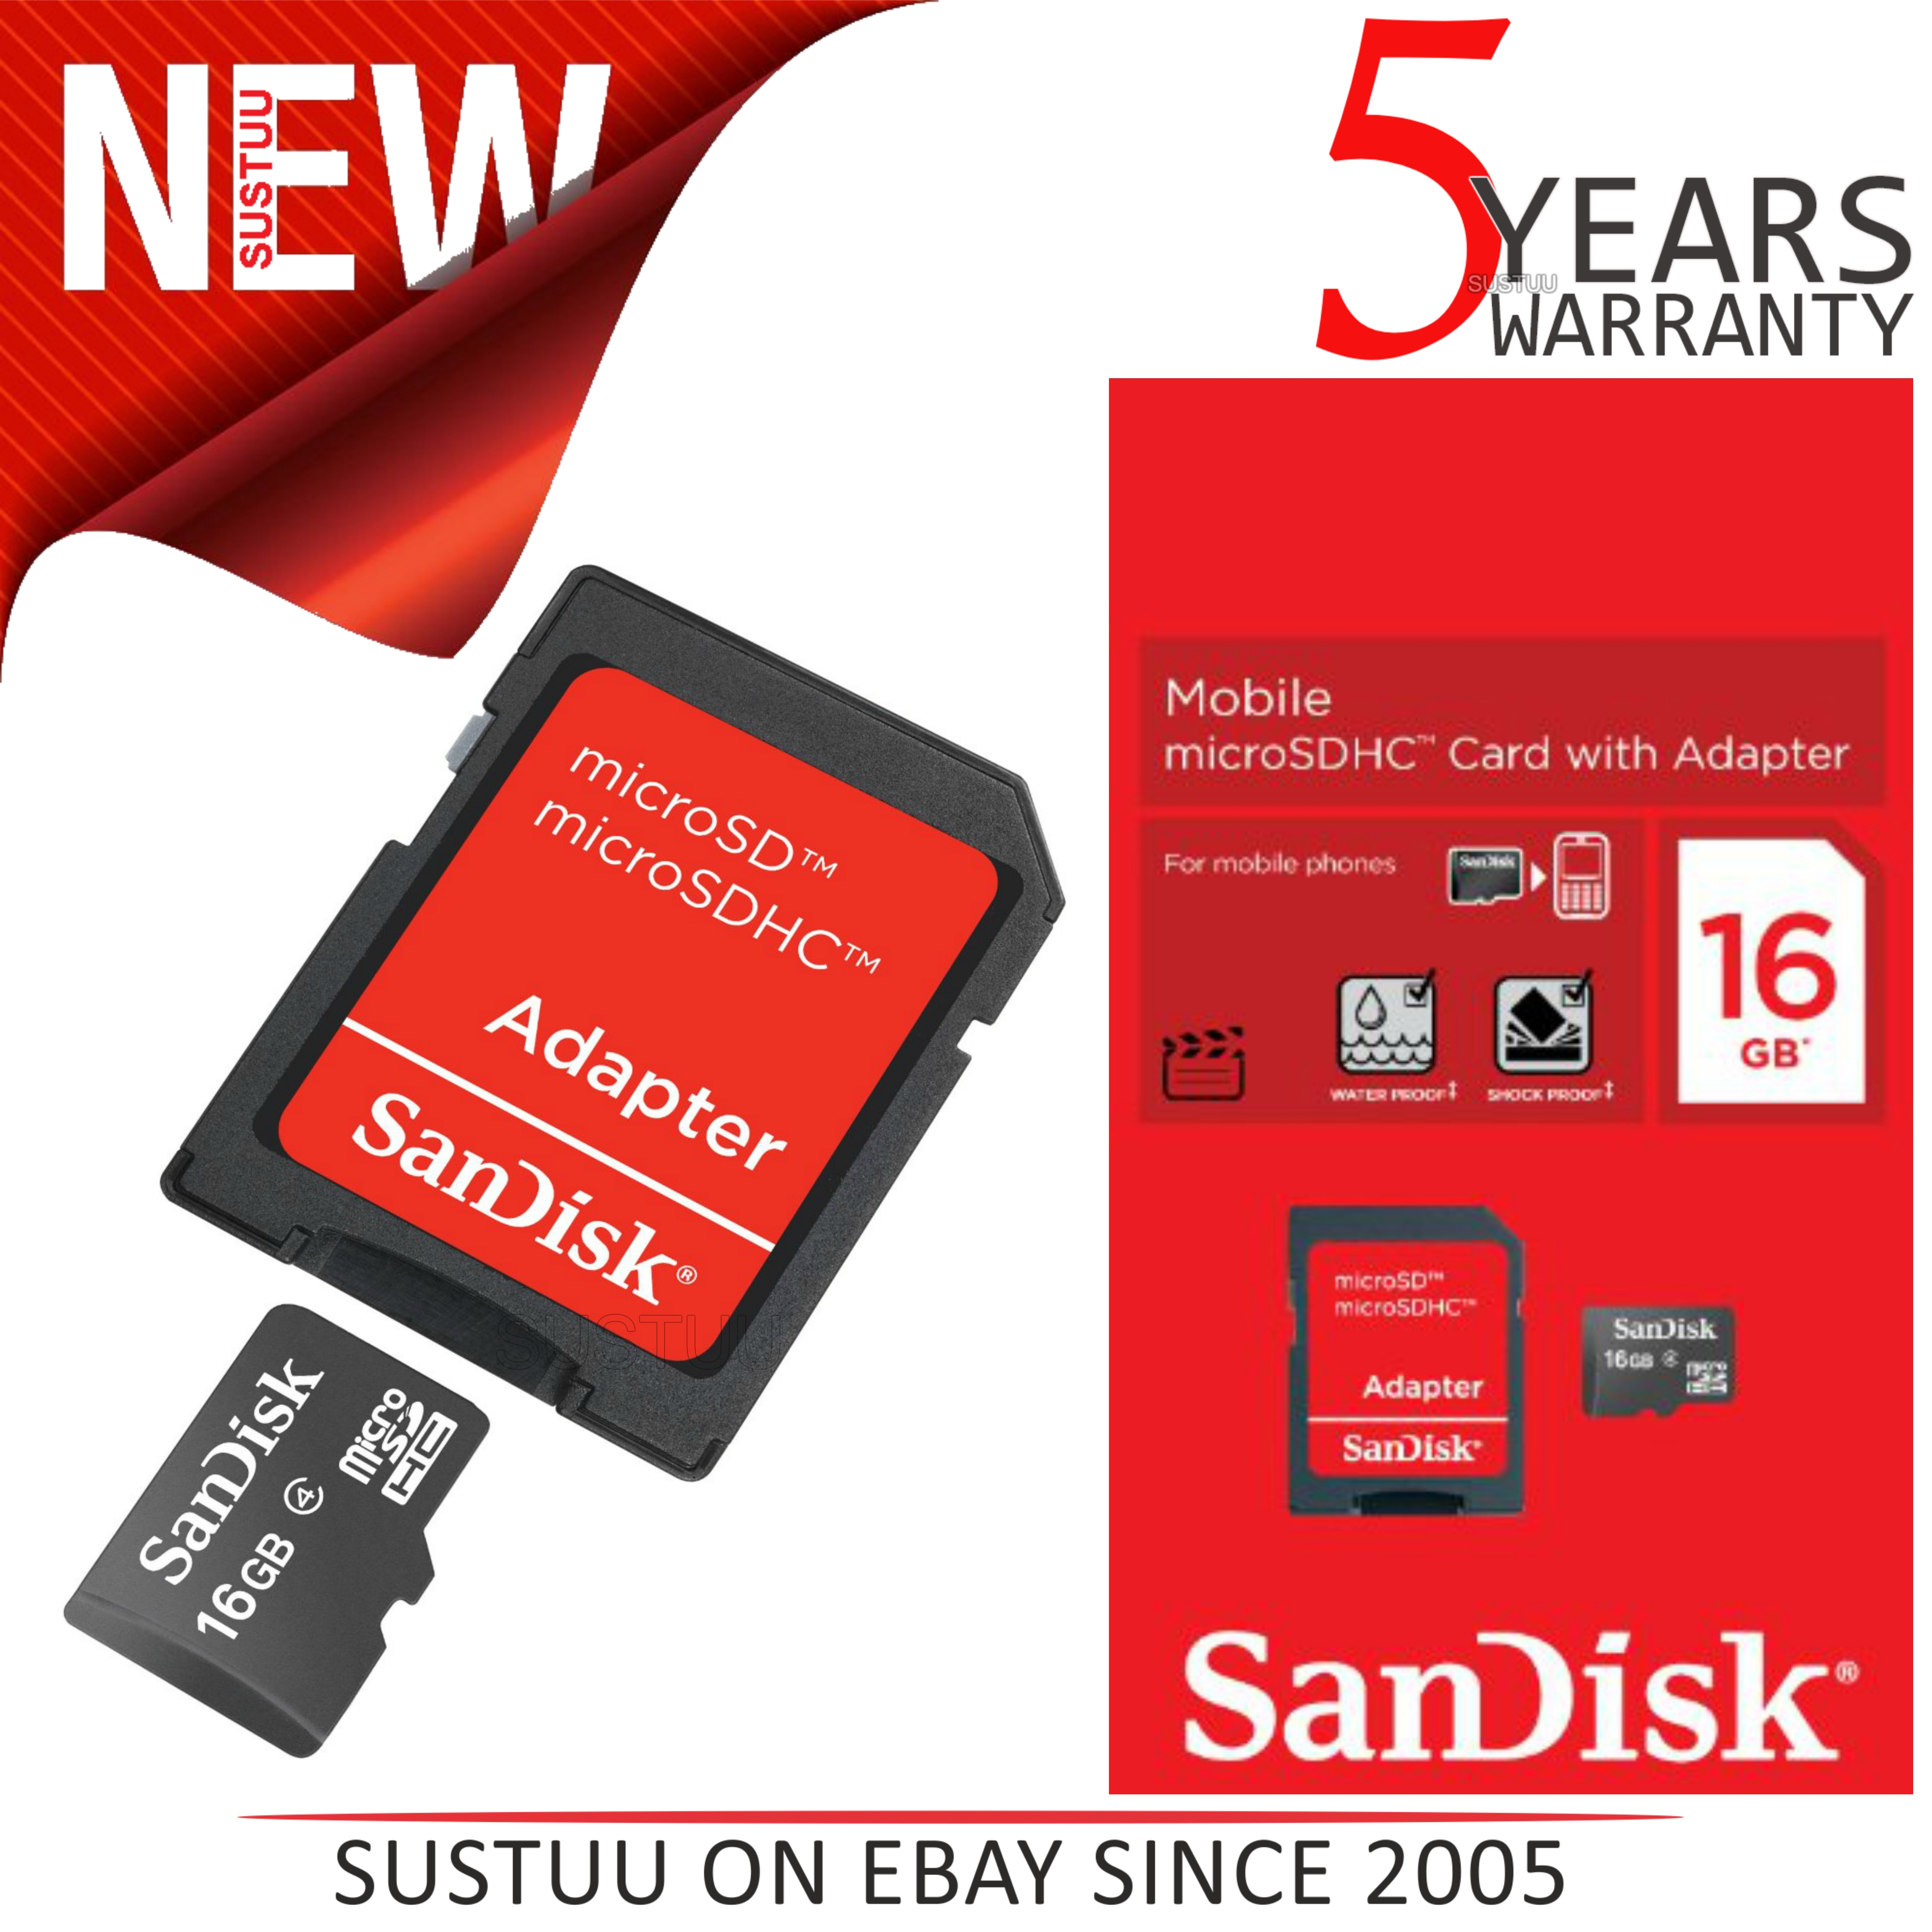 how to use sandisk microsdhc card with adapter